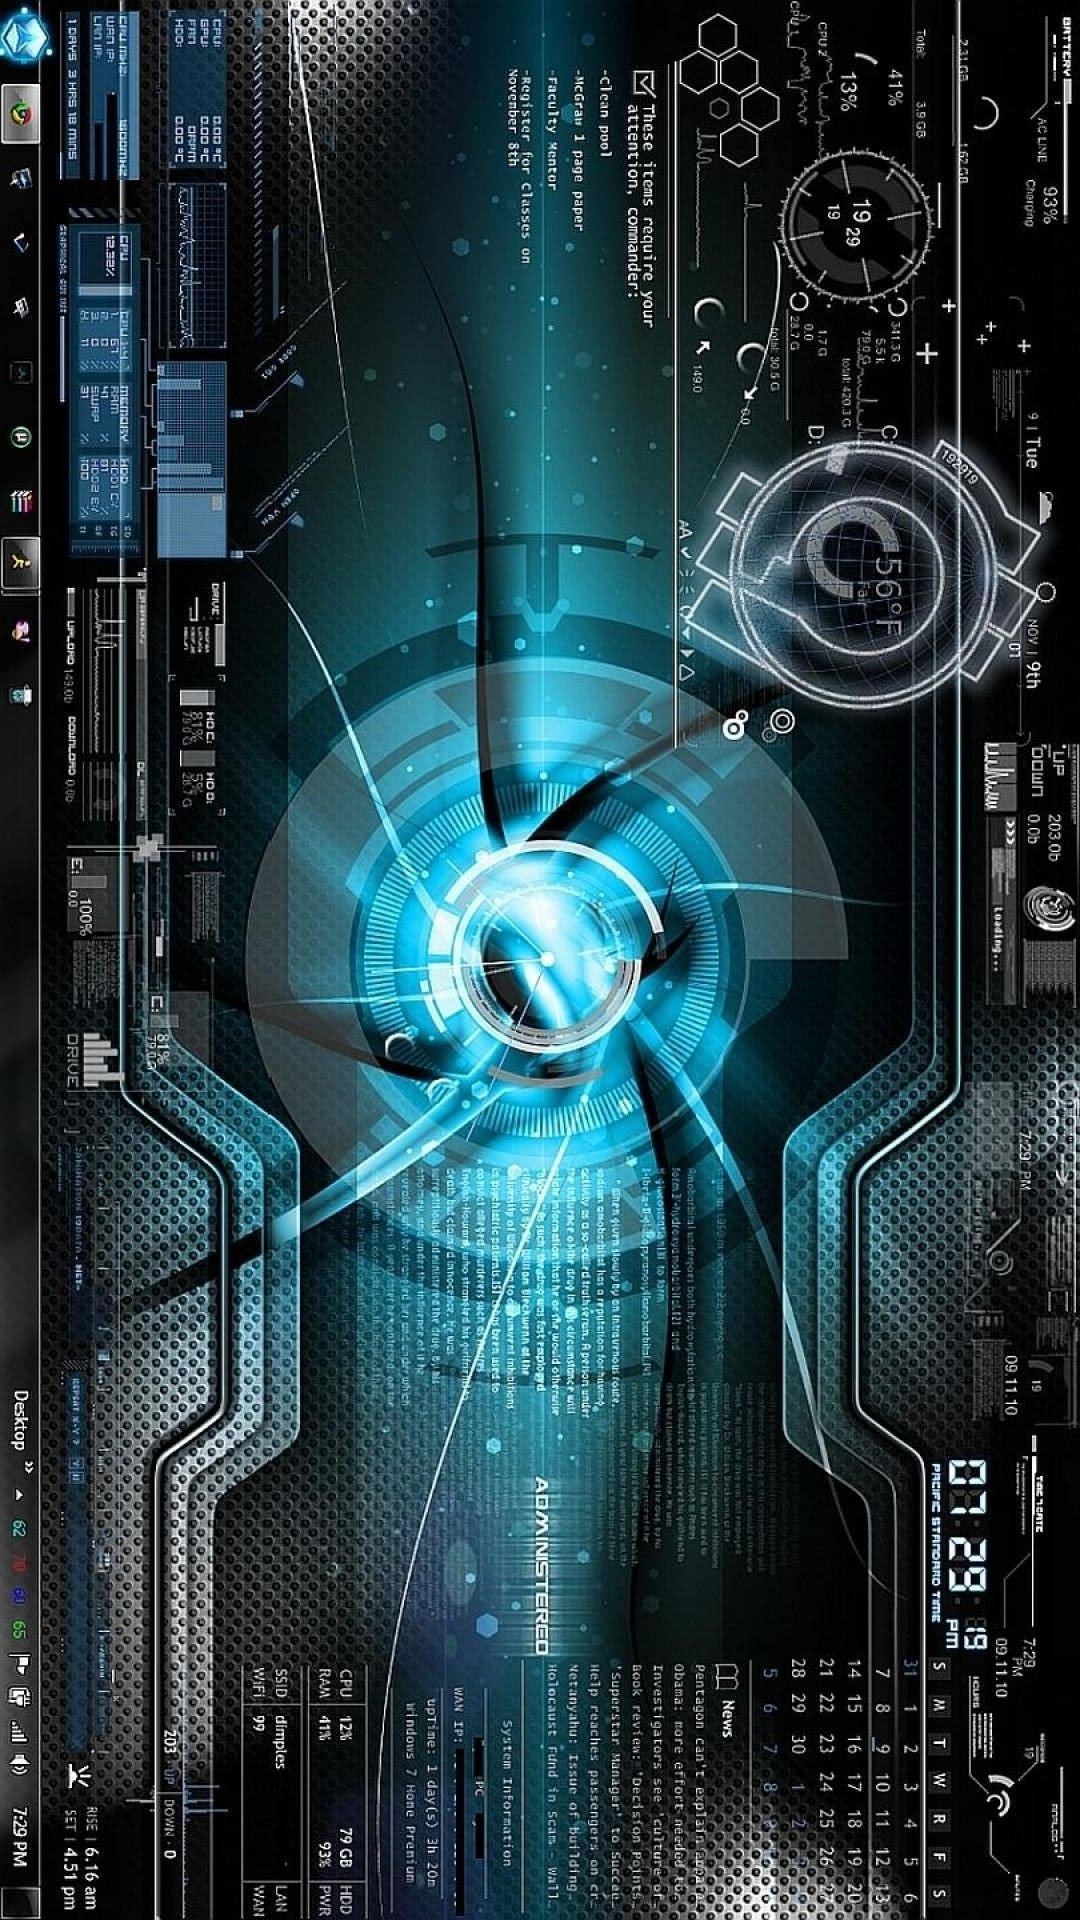 Pin By Almadindivina On Template Technology Wallpaper Phone Wallpaper Design Electronics Wallpaper